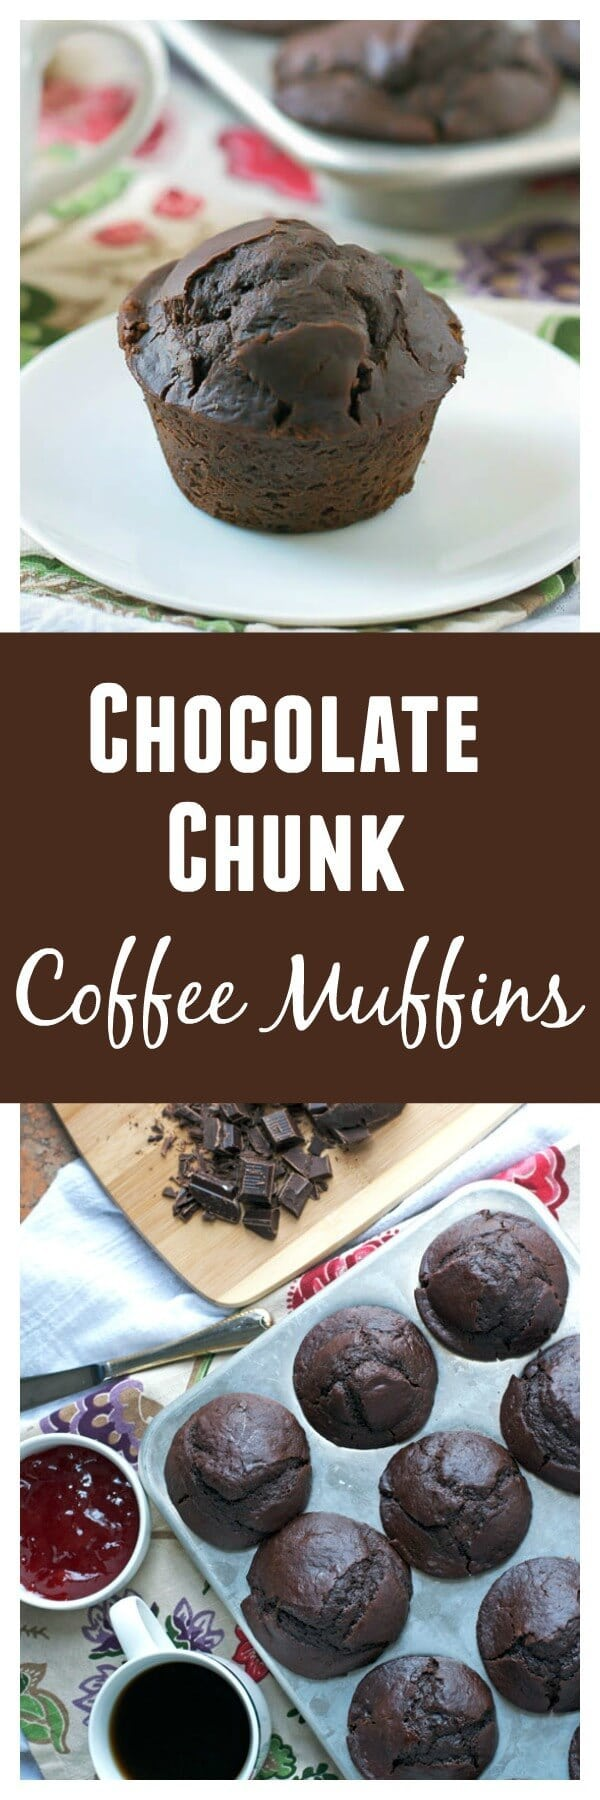 Chocolate Chunk Coffee Muffins. Studded with chocolate and laced with espresso, these muffins pack a decadent punch of flavor!